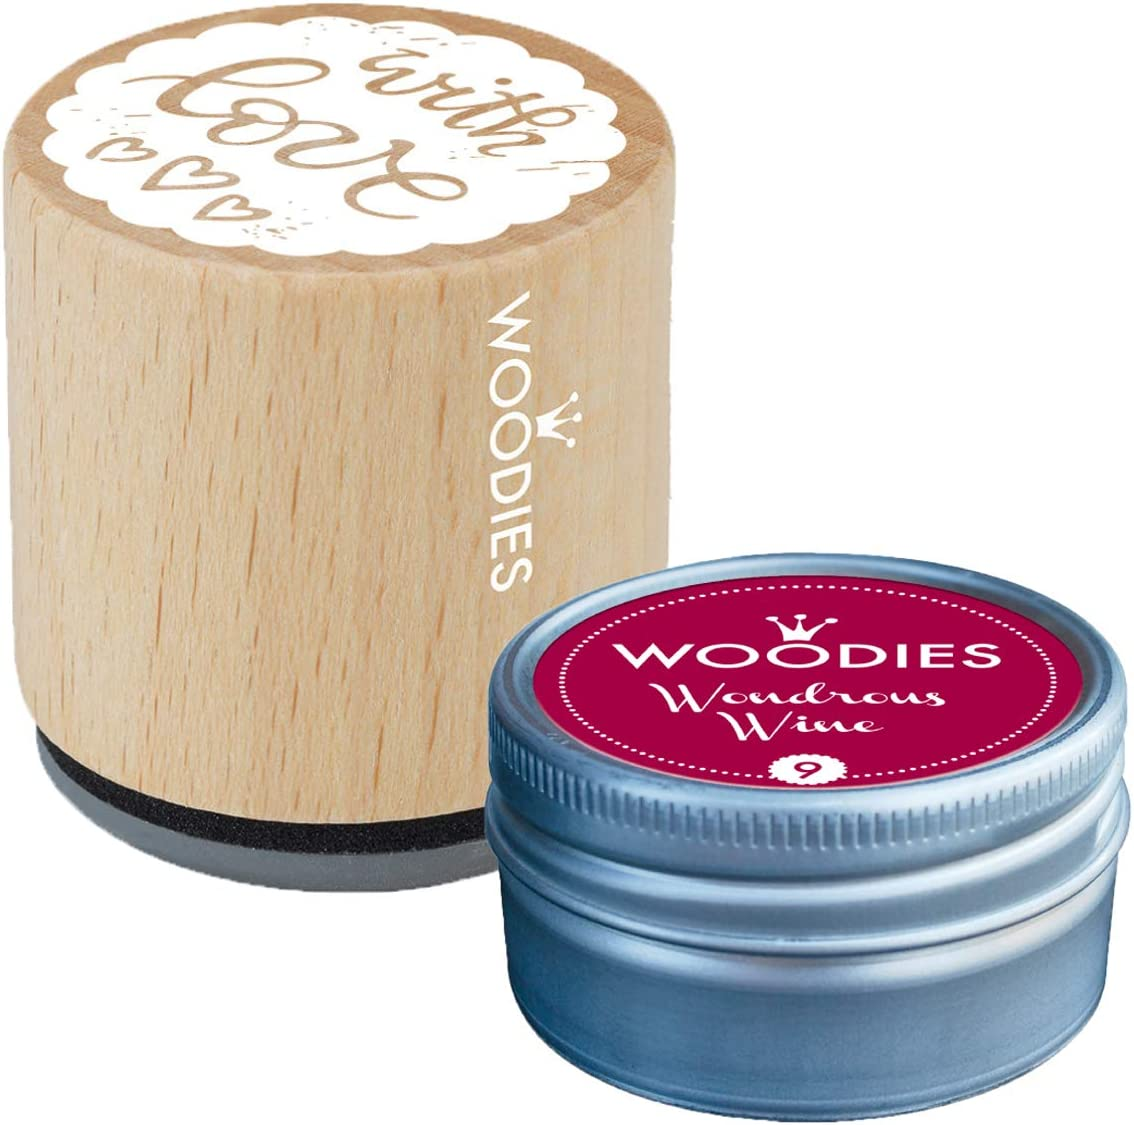 Woodies Love Stamp with Wondrous Wine Ink Ru Pad 2021 model Wooden Popular brand in the world Set